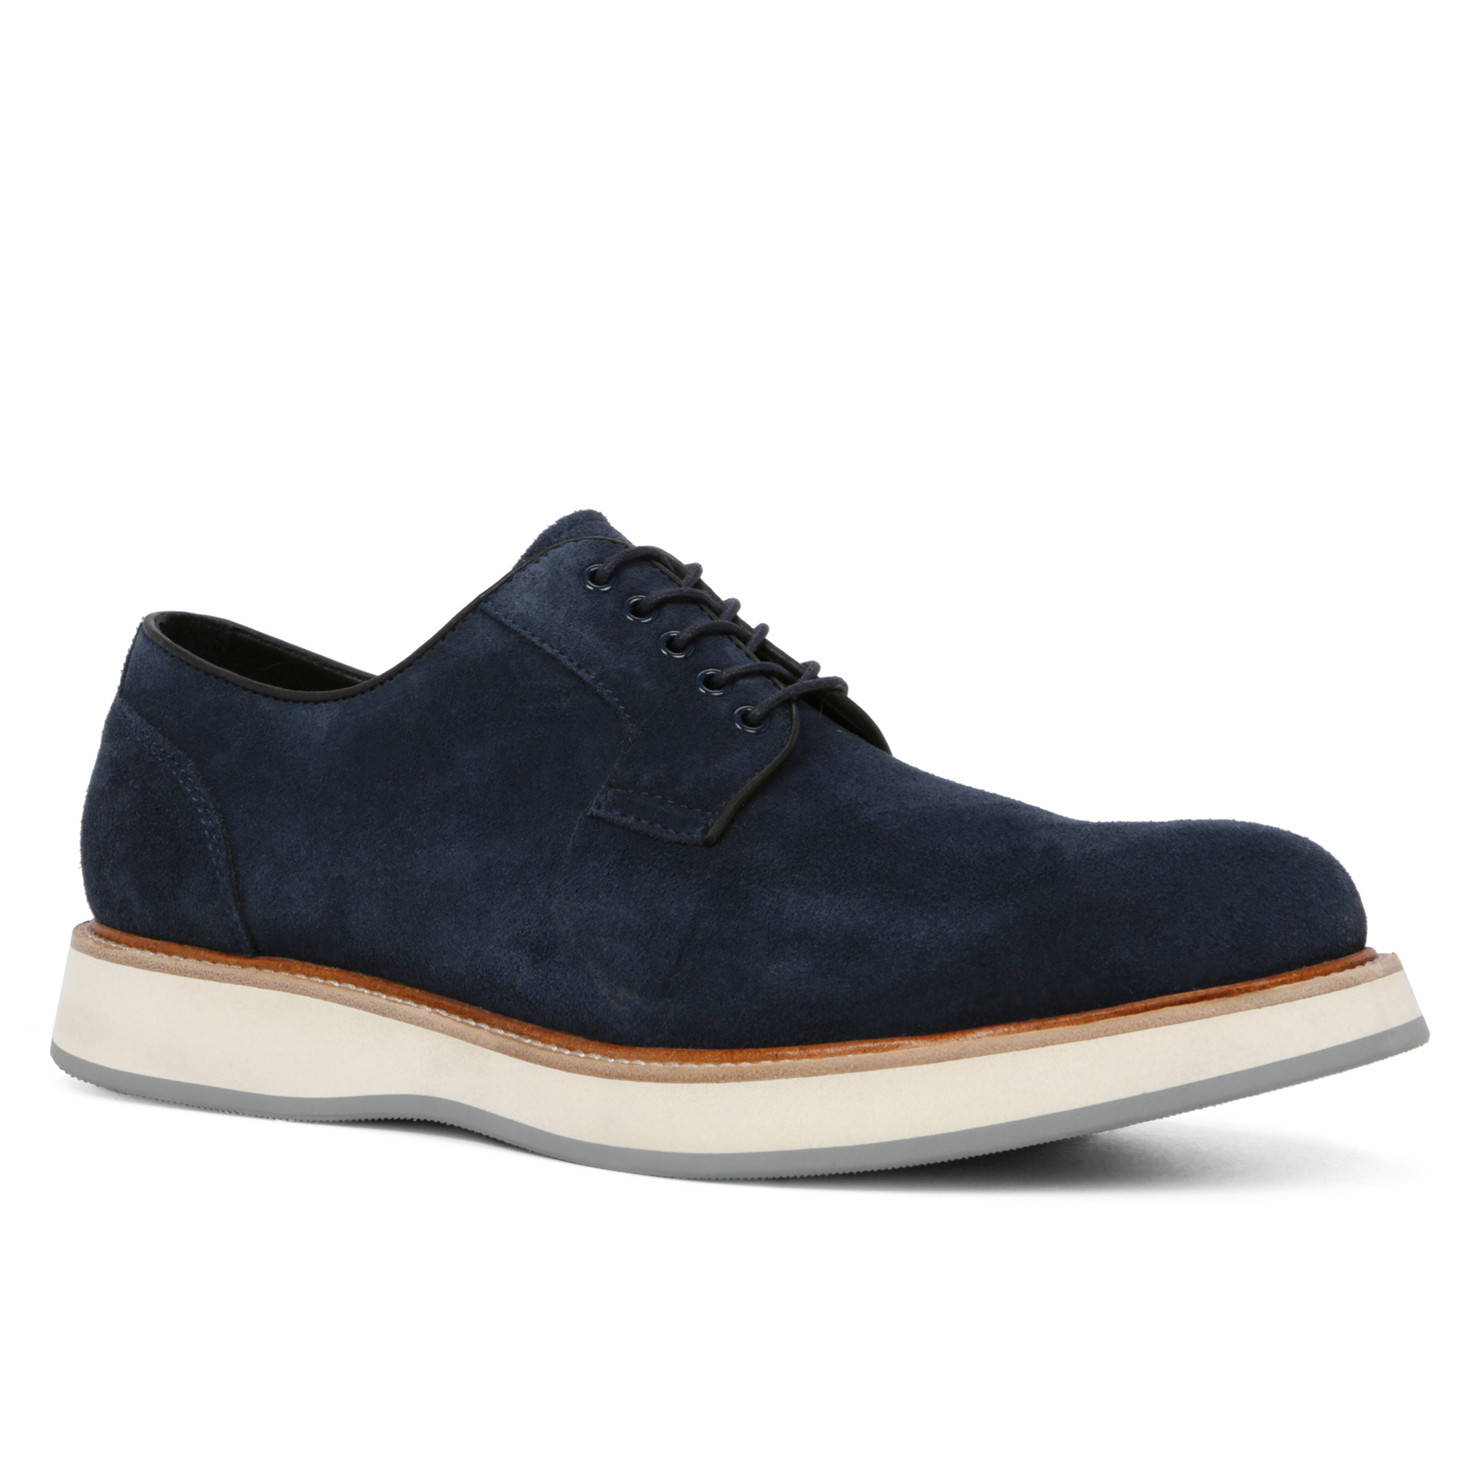 ALDO Leather Dobson in Navy Suede (White) for Men